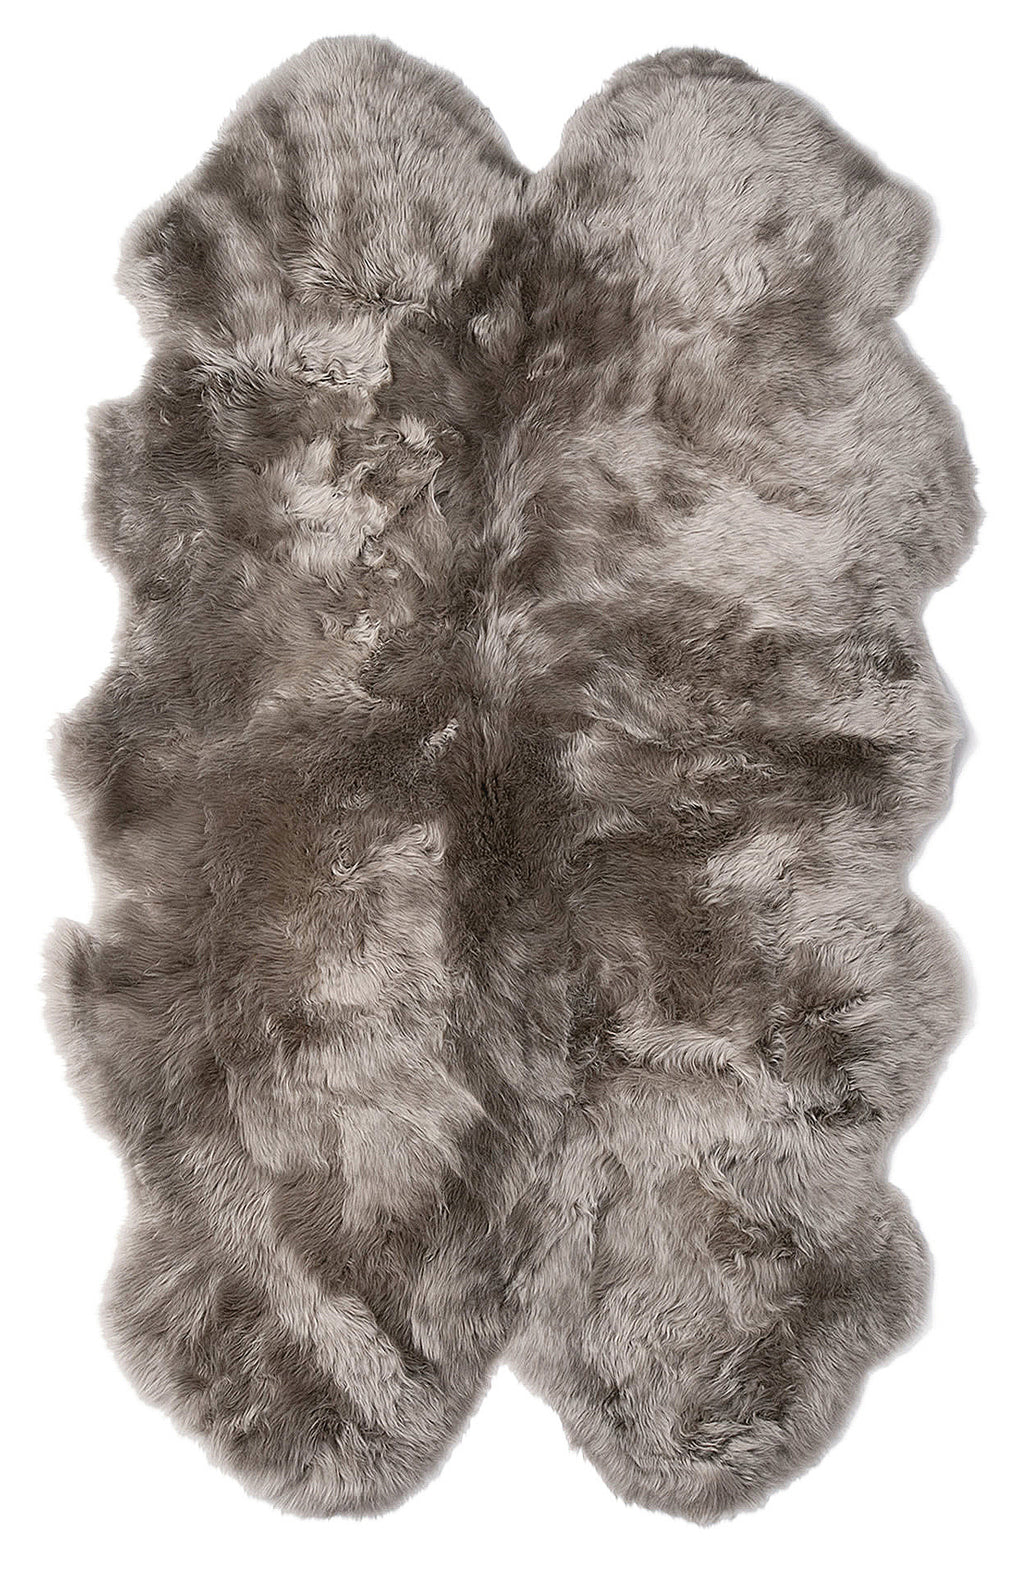 Quarto Sheepskin Rug (4'x6') - ParkerWool  - 8